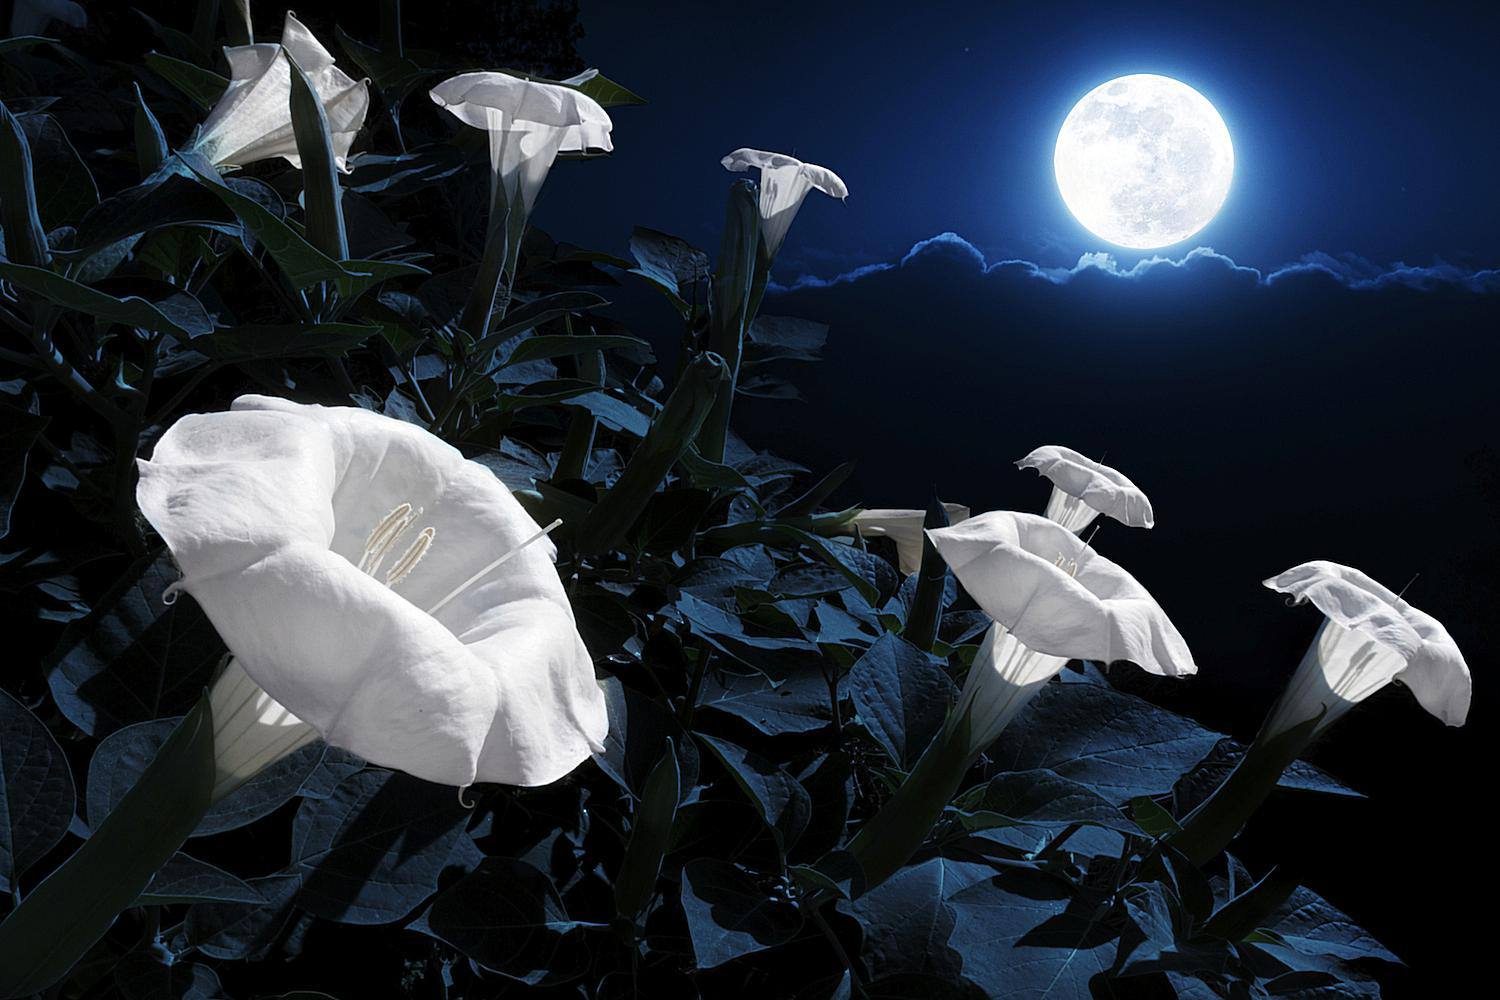 Flowers Blooming Under Moonlight